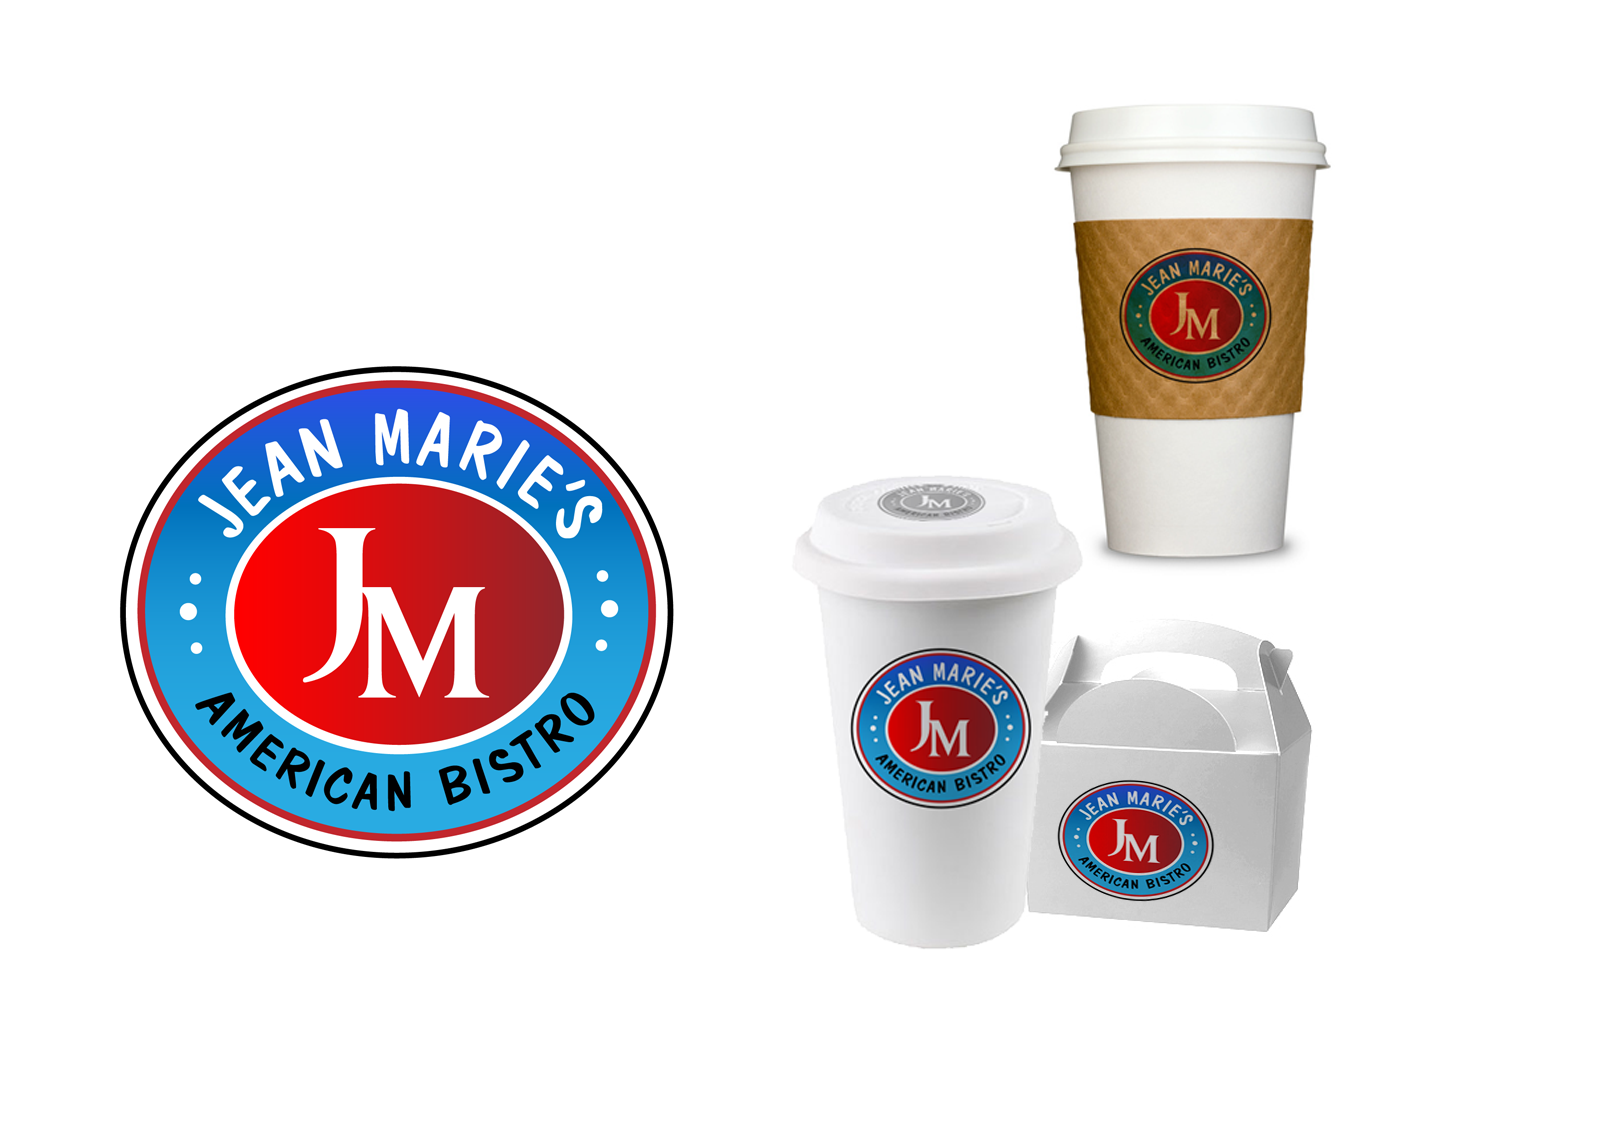 Jean Marie's American Bistro needs a new logo